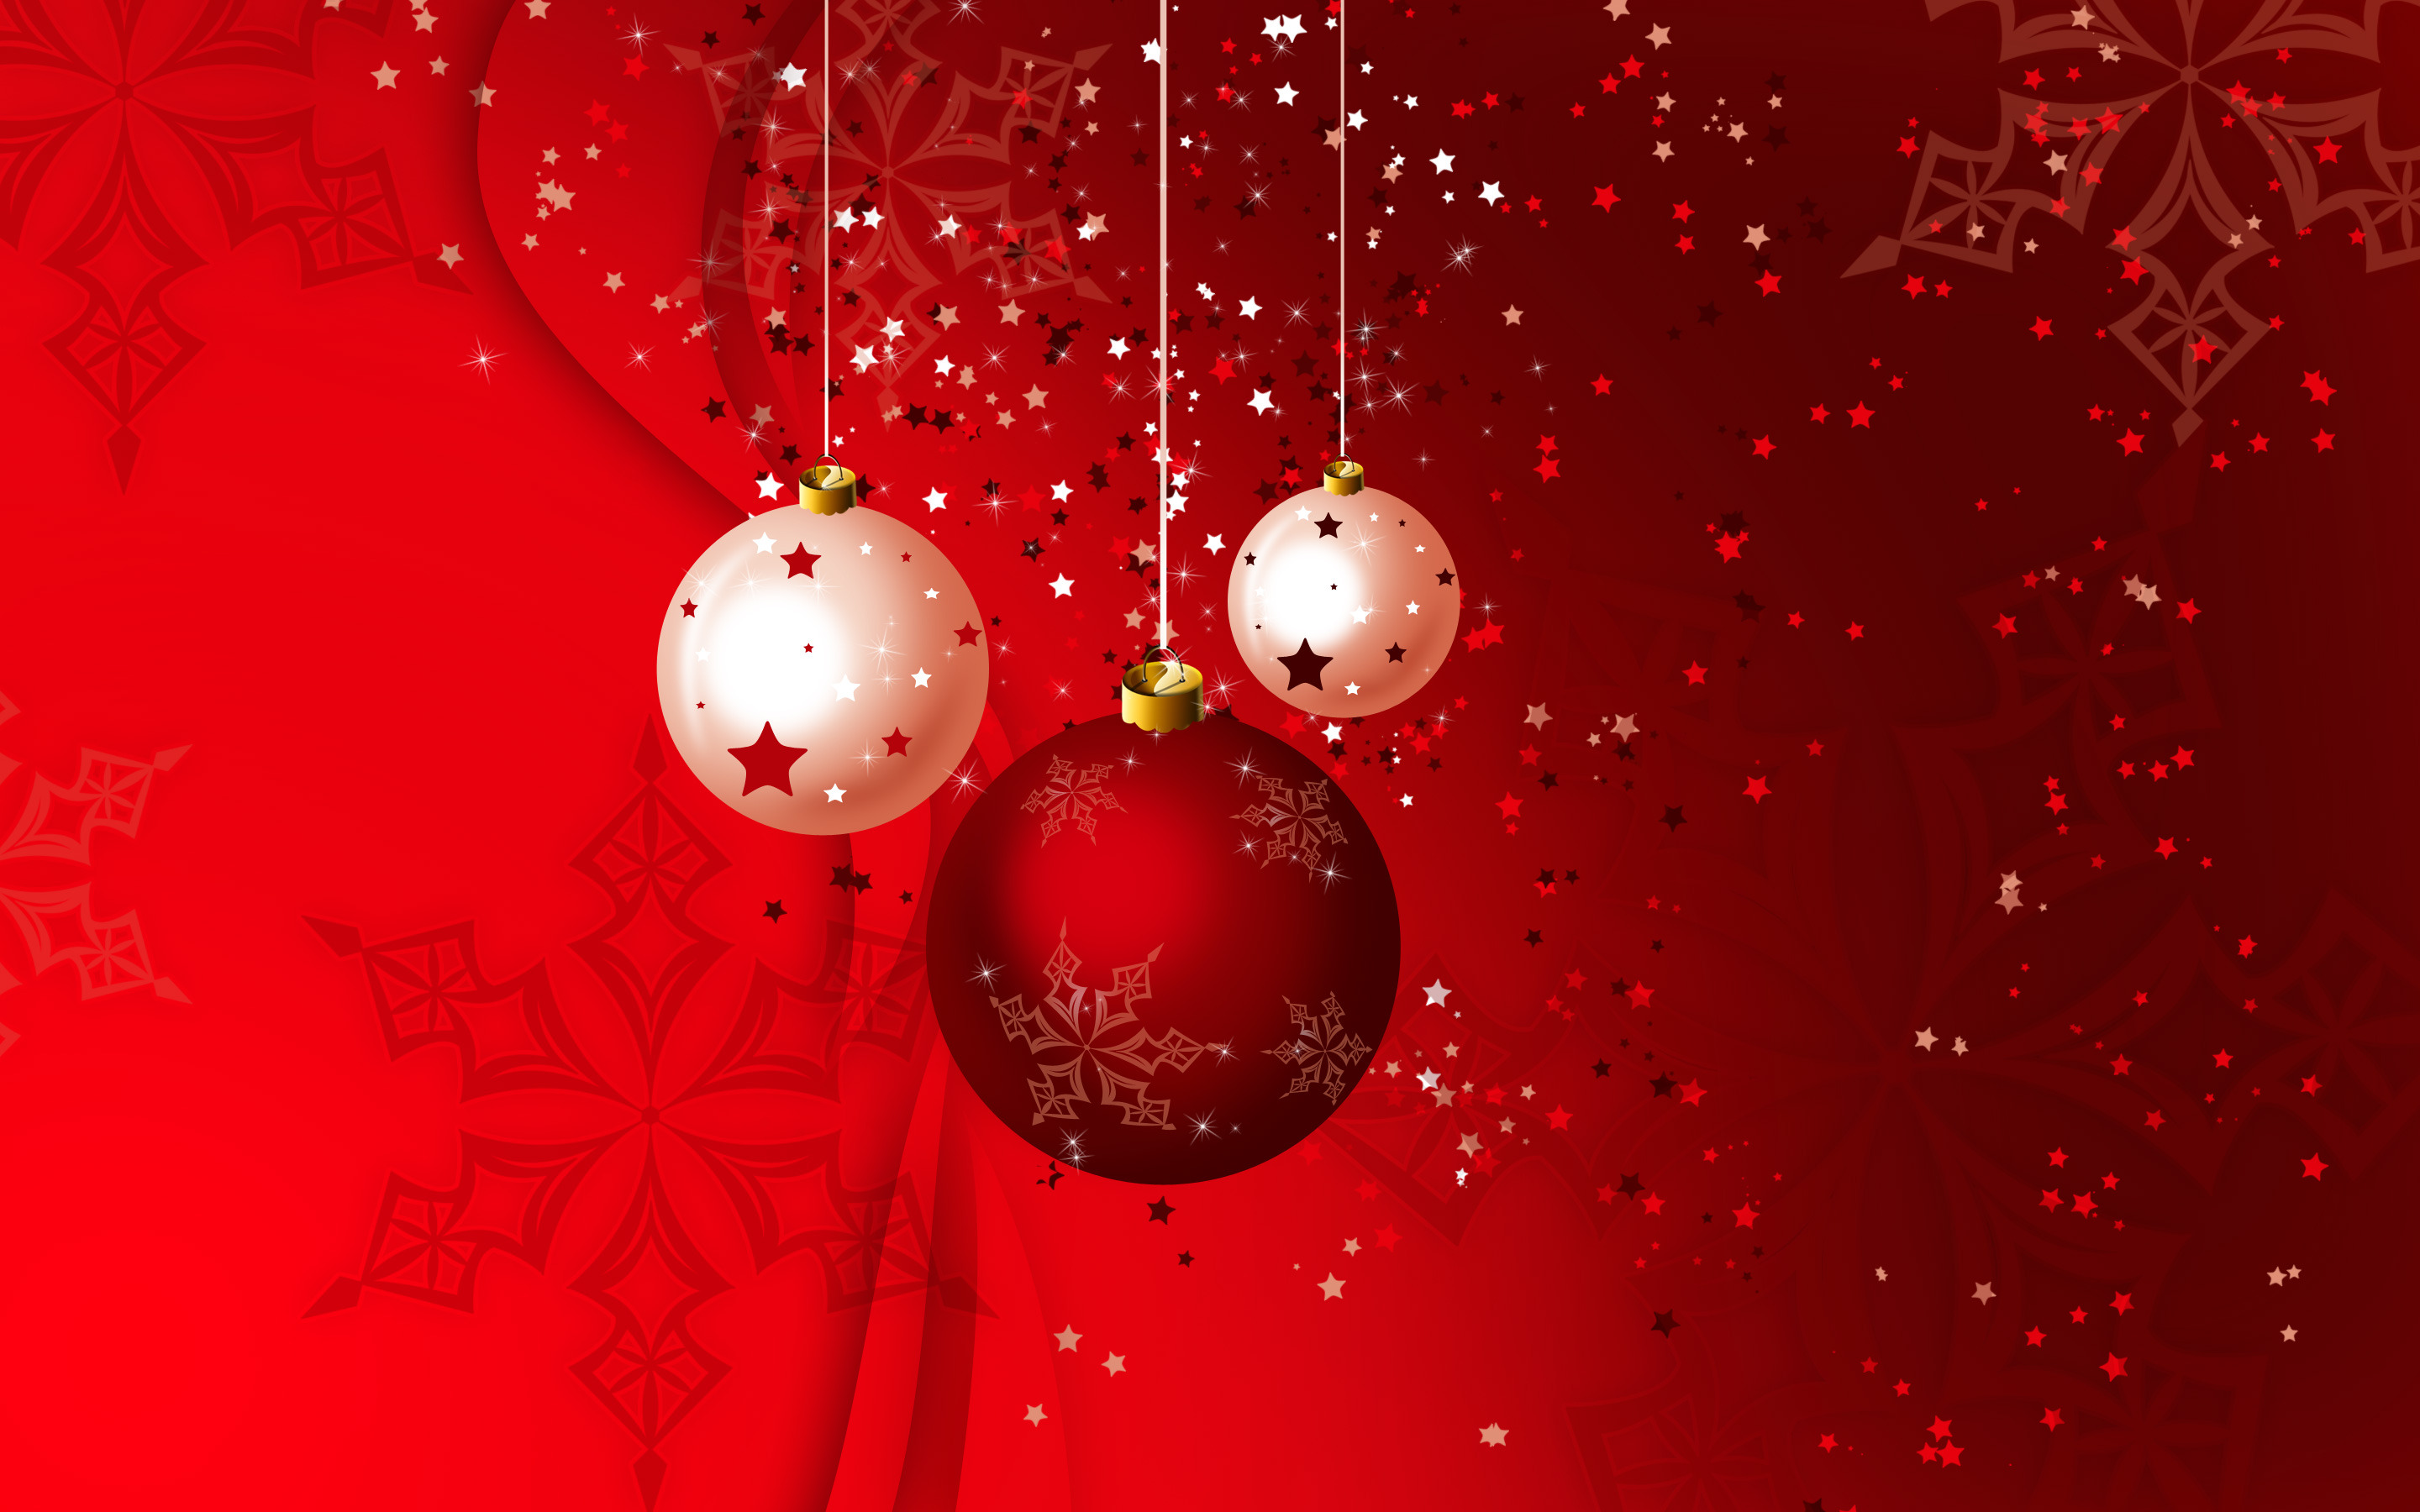 35 Stars At Xmas Background Images, Cards Or Christmas - Red Full Hd Christmas Background , HD Wallpaper & Backgrounds